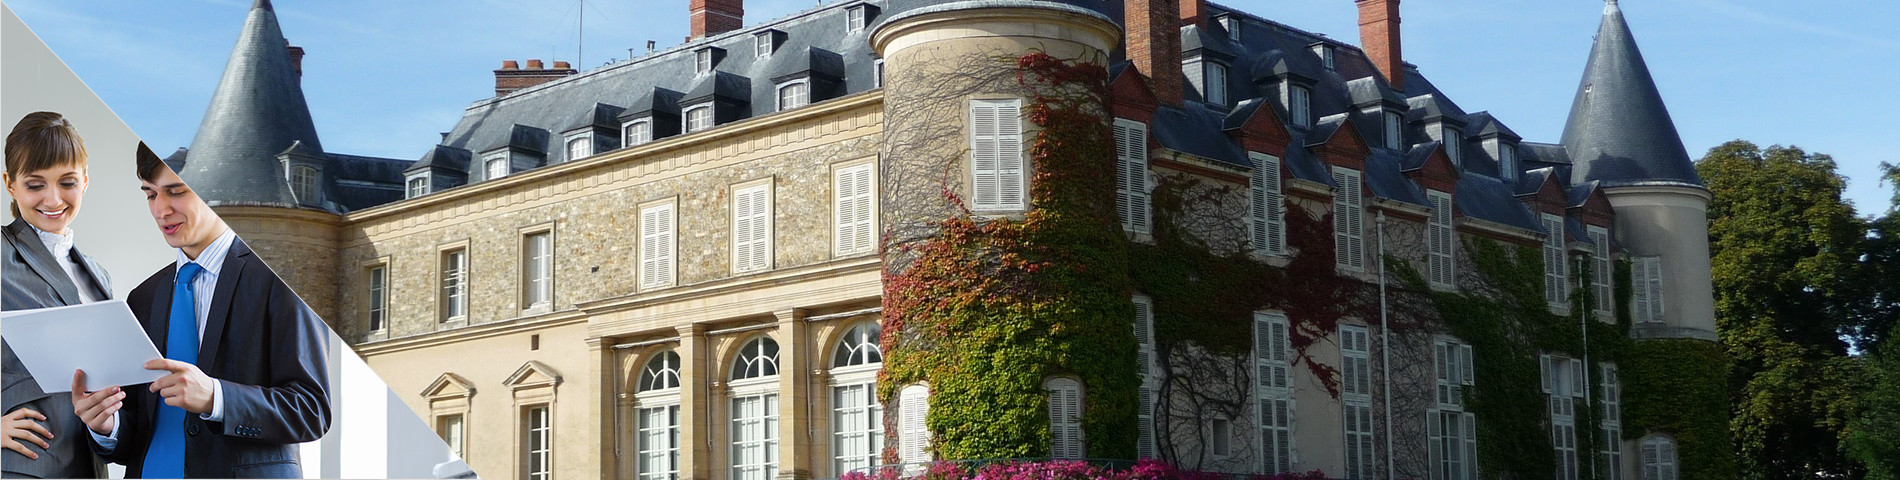 Rambouillet - Business Privat